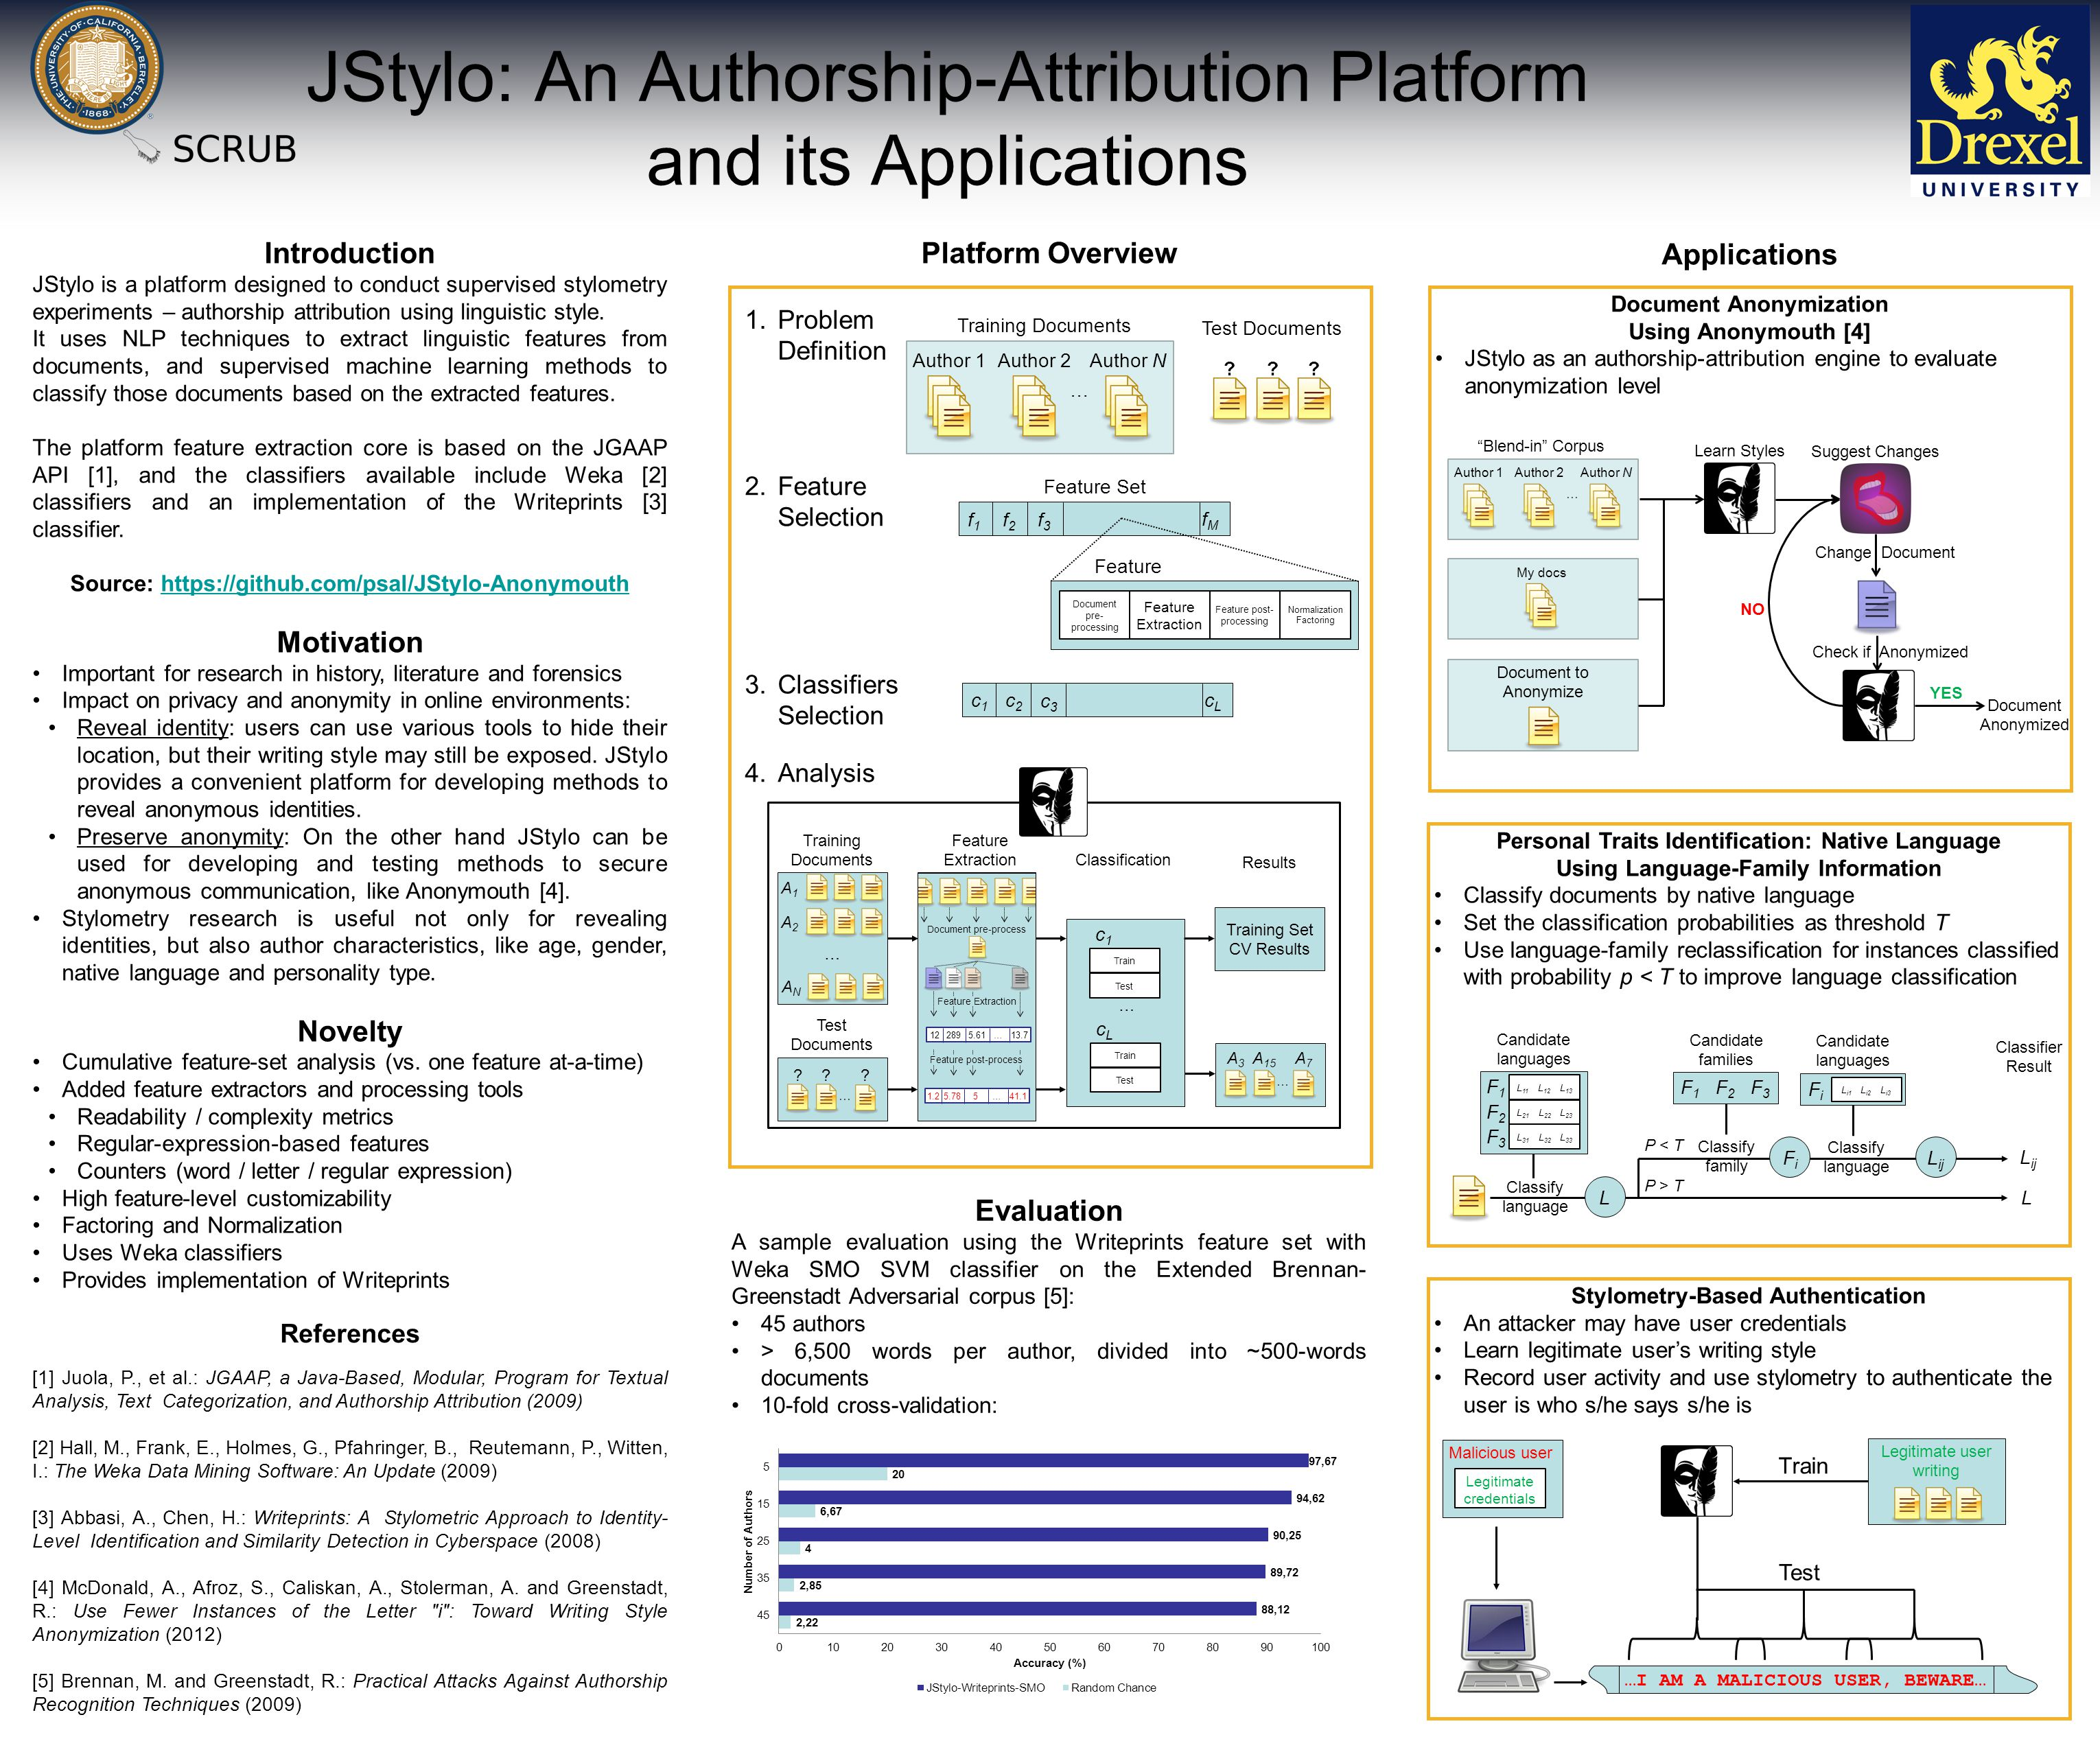 JStylo: An Authorship-Attribution Platform and its Applications